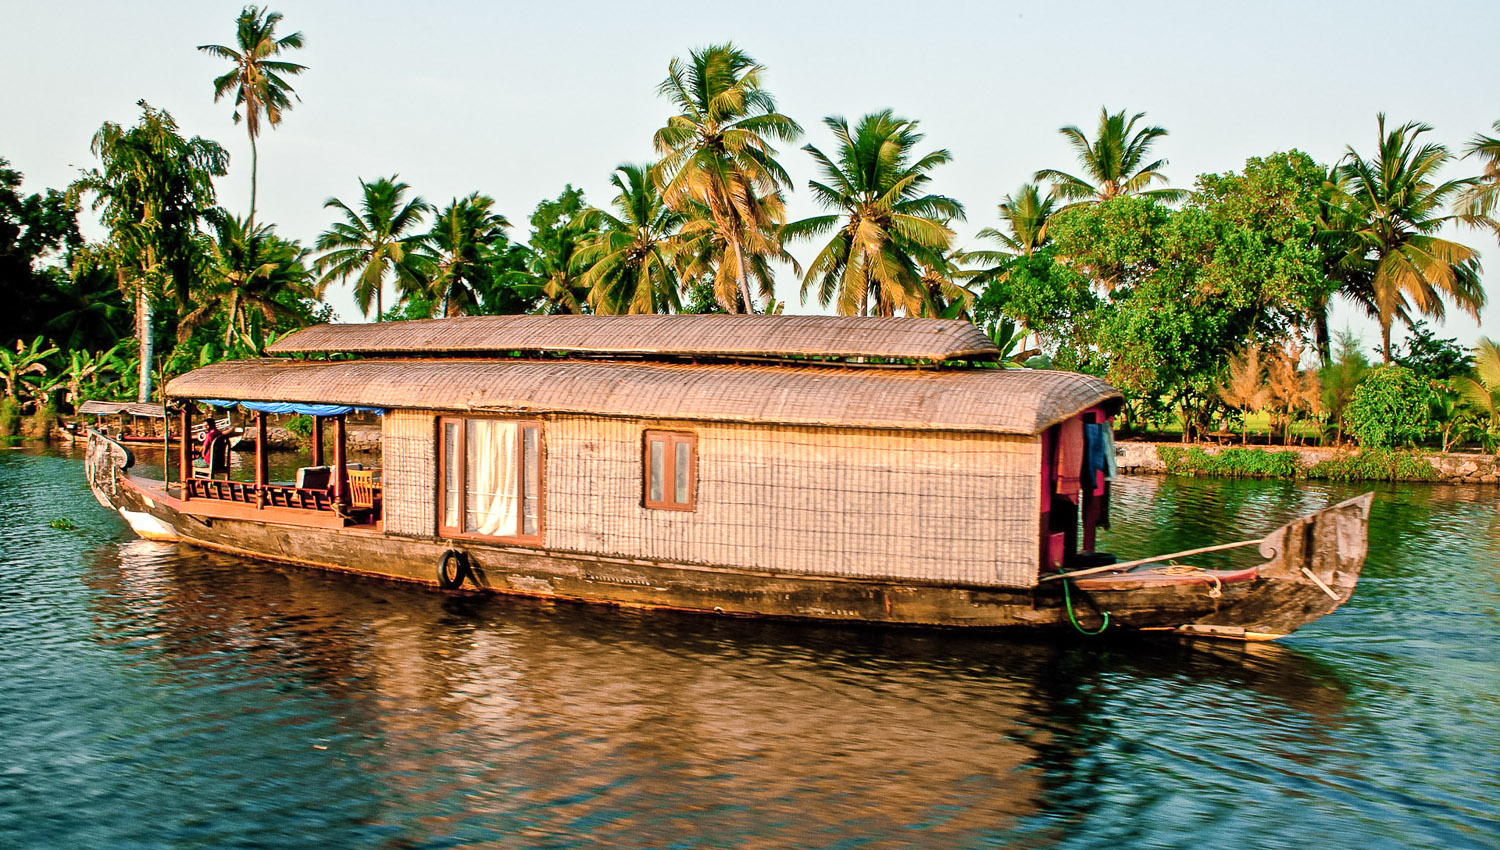 A one-bedroom houseboat on the backwaters.   Image:    Karlokolumno